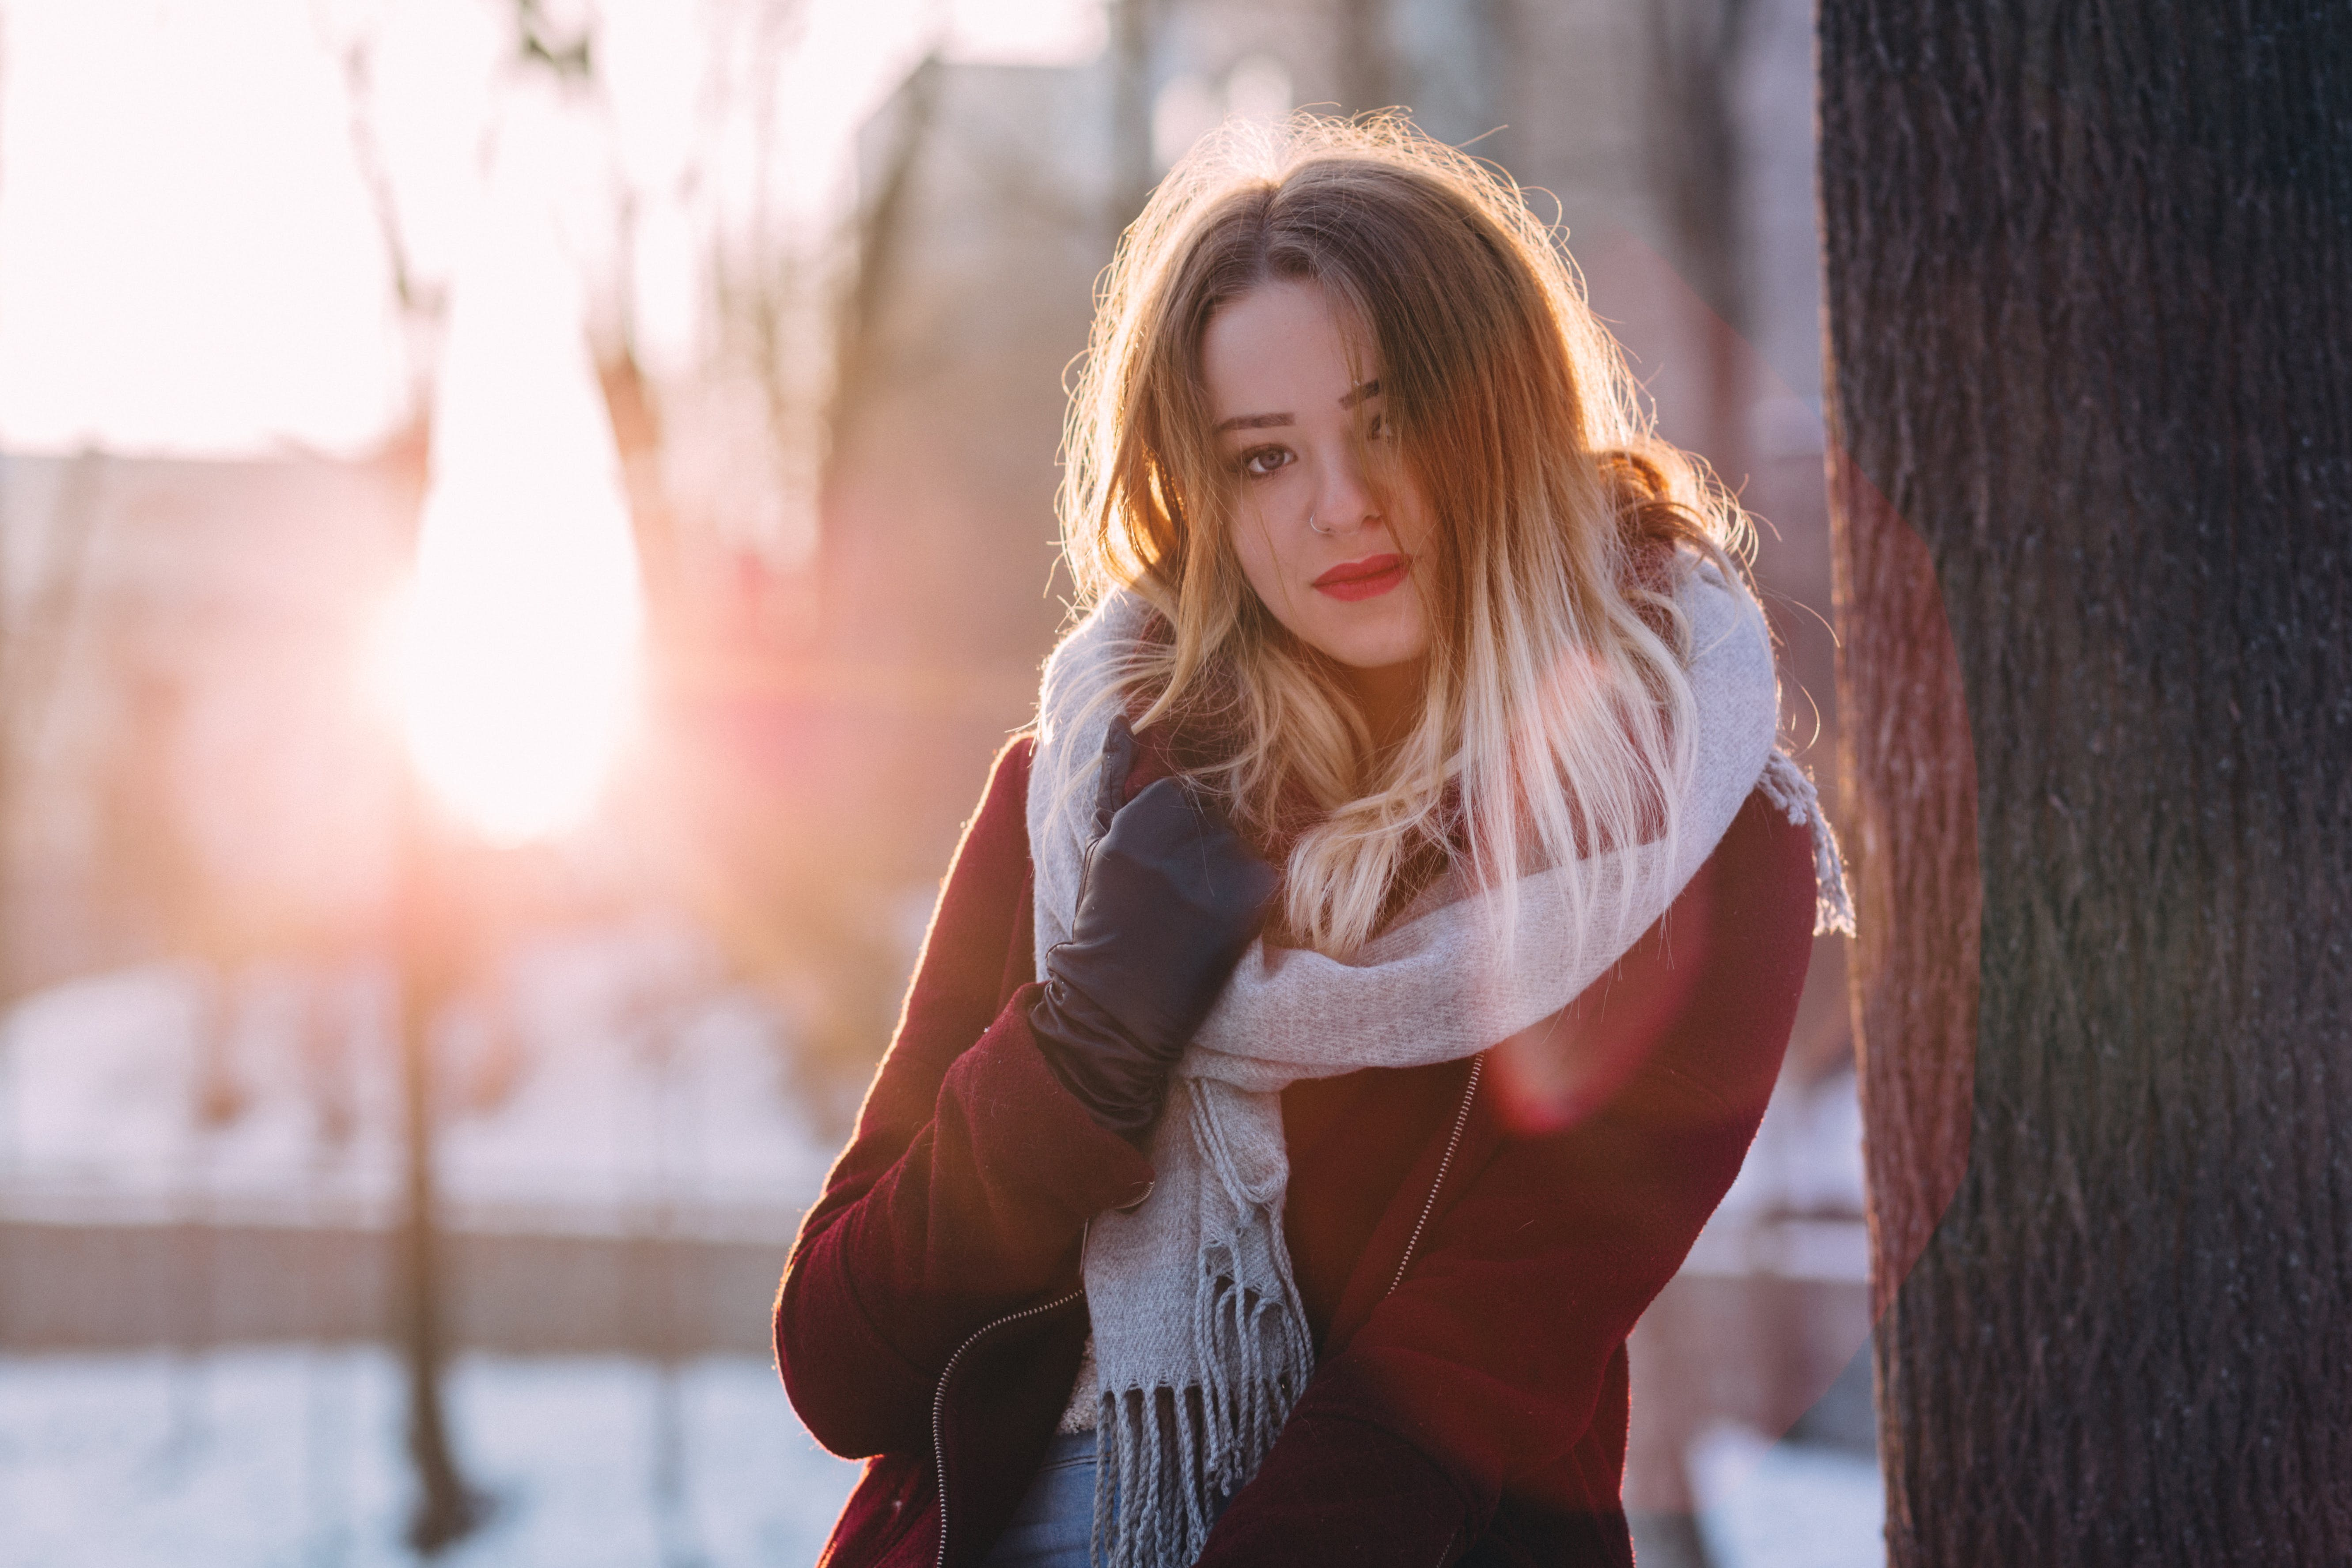 Portrait of Young Woman during Winter